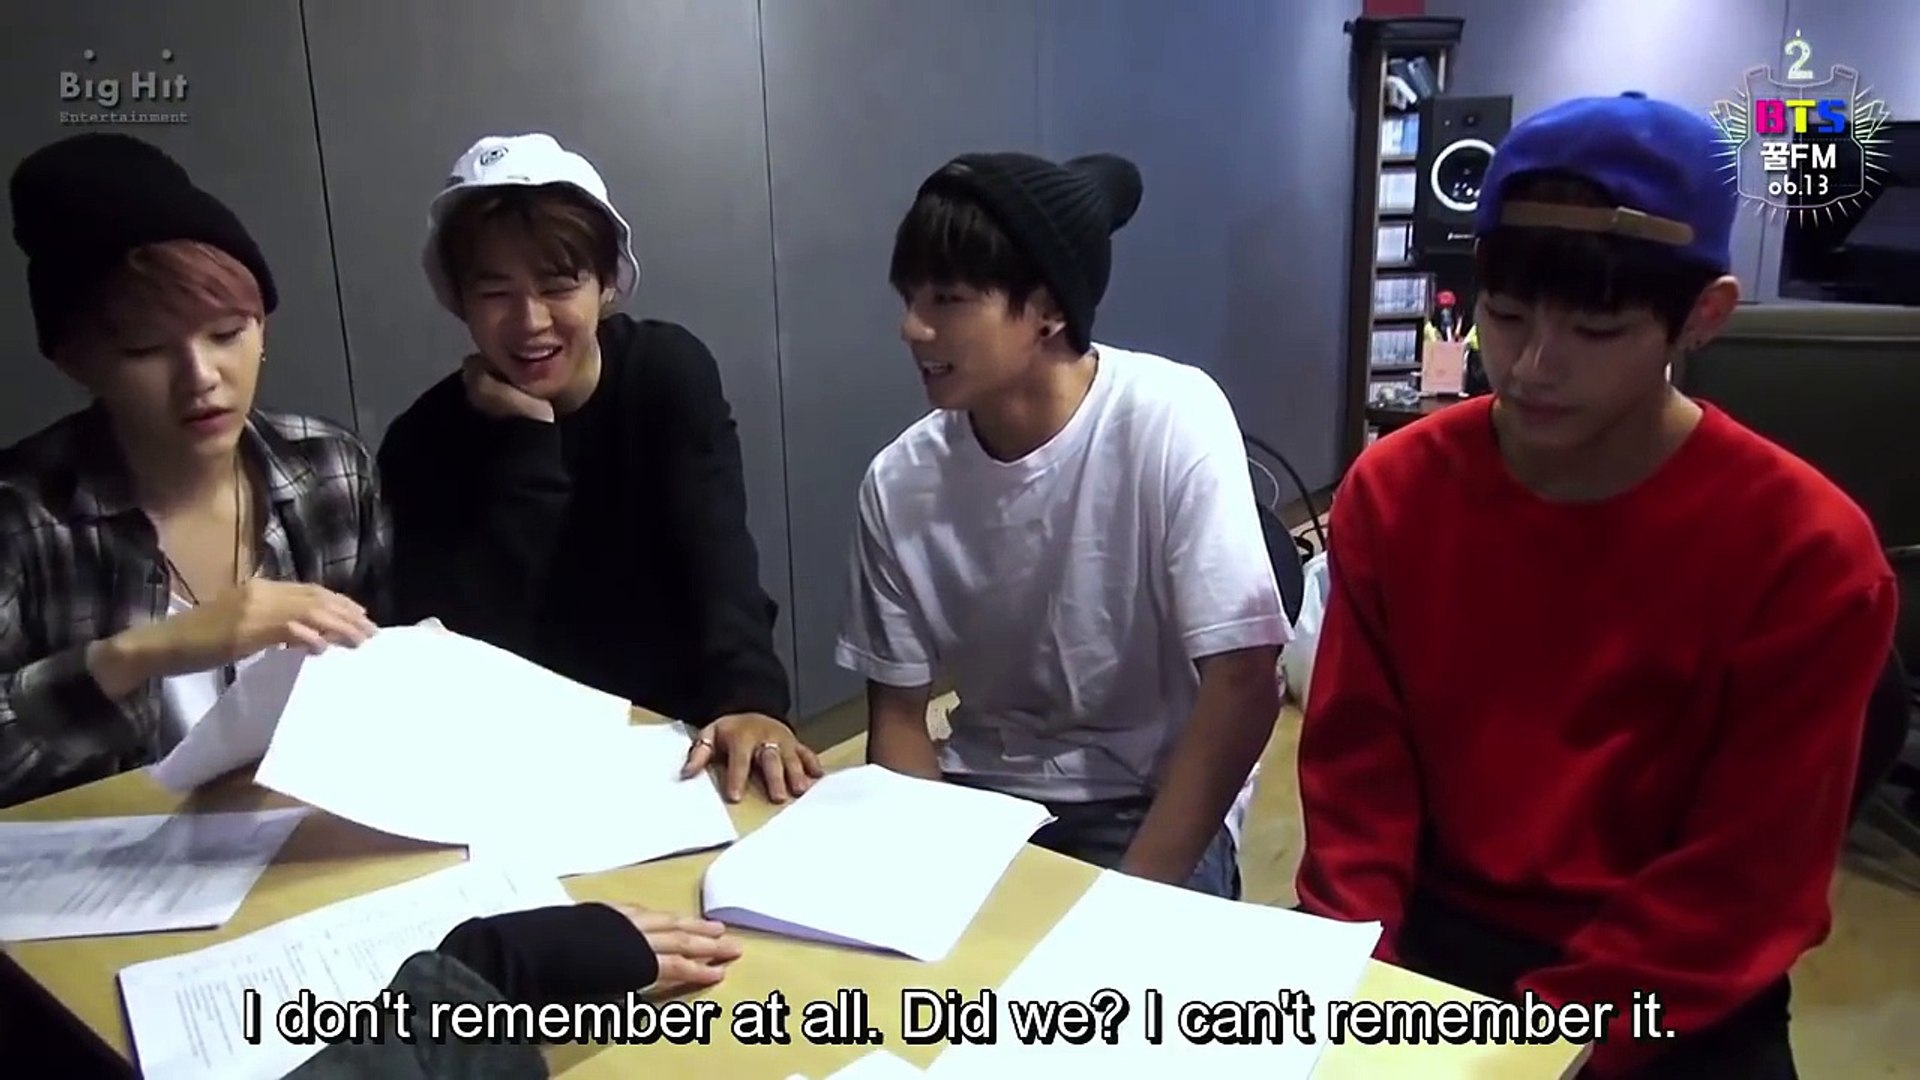 [Engsub] [방탄소년단] BTS COOL FM 06.13 - BTS 2nd Birthday 'BTS Festa 2015'